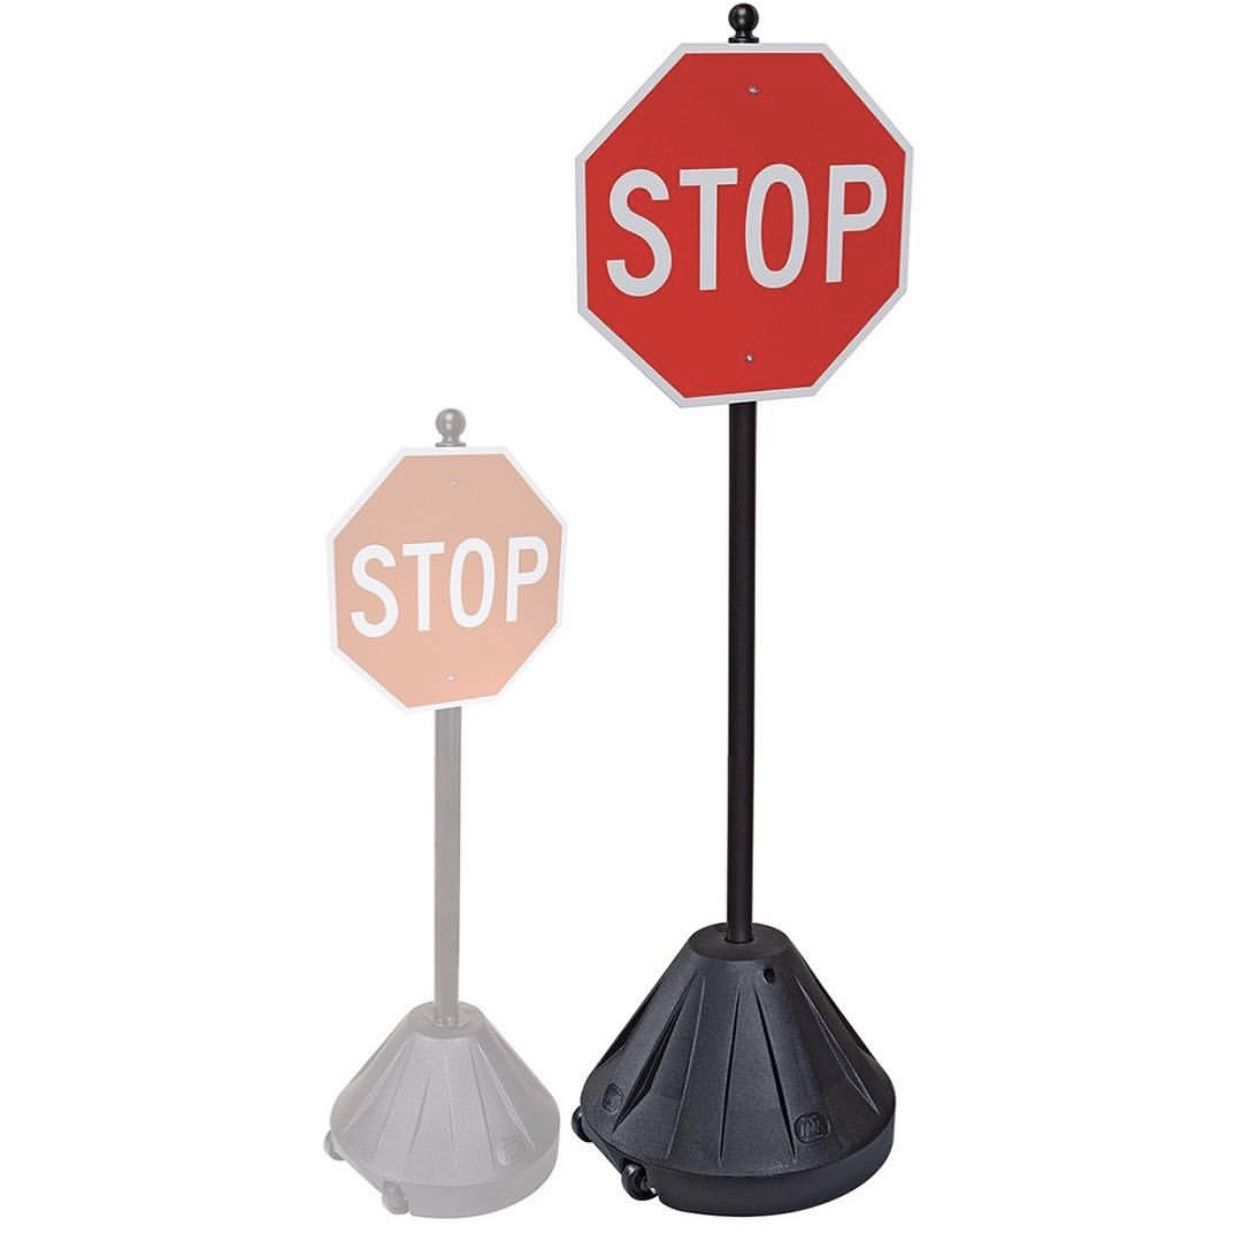 Check out our PP2 vs our PP3. What a difference! Get yours at MagicMaster.com #sign #signs #signproducts #stopsign #roadsign #streetsign #parkinglot #parkinggarage #schoolyard #school #sidewalksign #mall #outlets #newyork #pp2 #pp3 #signgeek #signmanufacturing